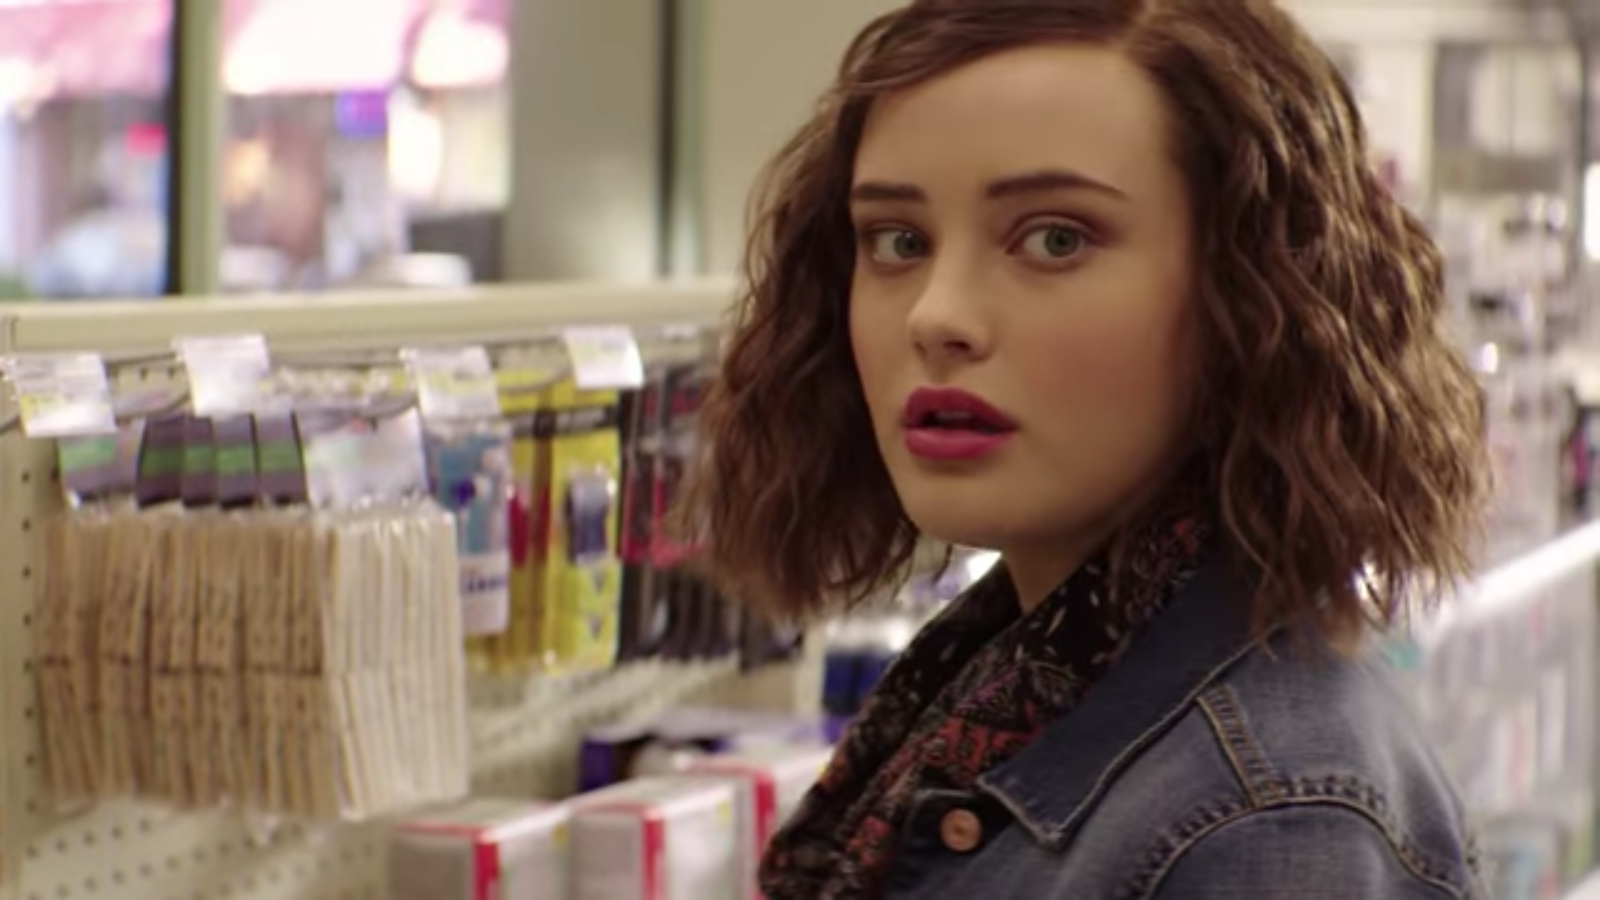 Image courtesy em the baker this image is for representation purpose - Katherine Langford As Hannah Baker Image Courtesy Of Youtube